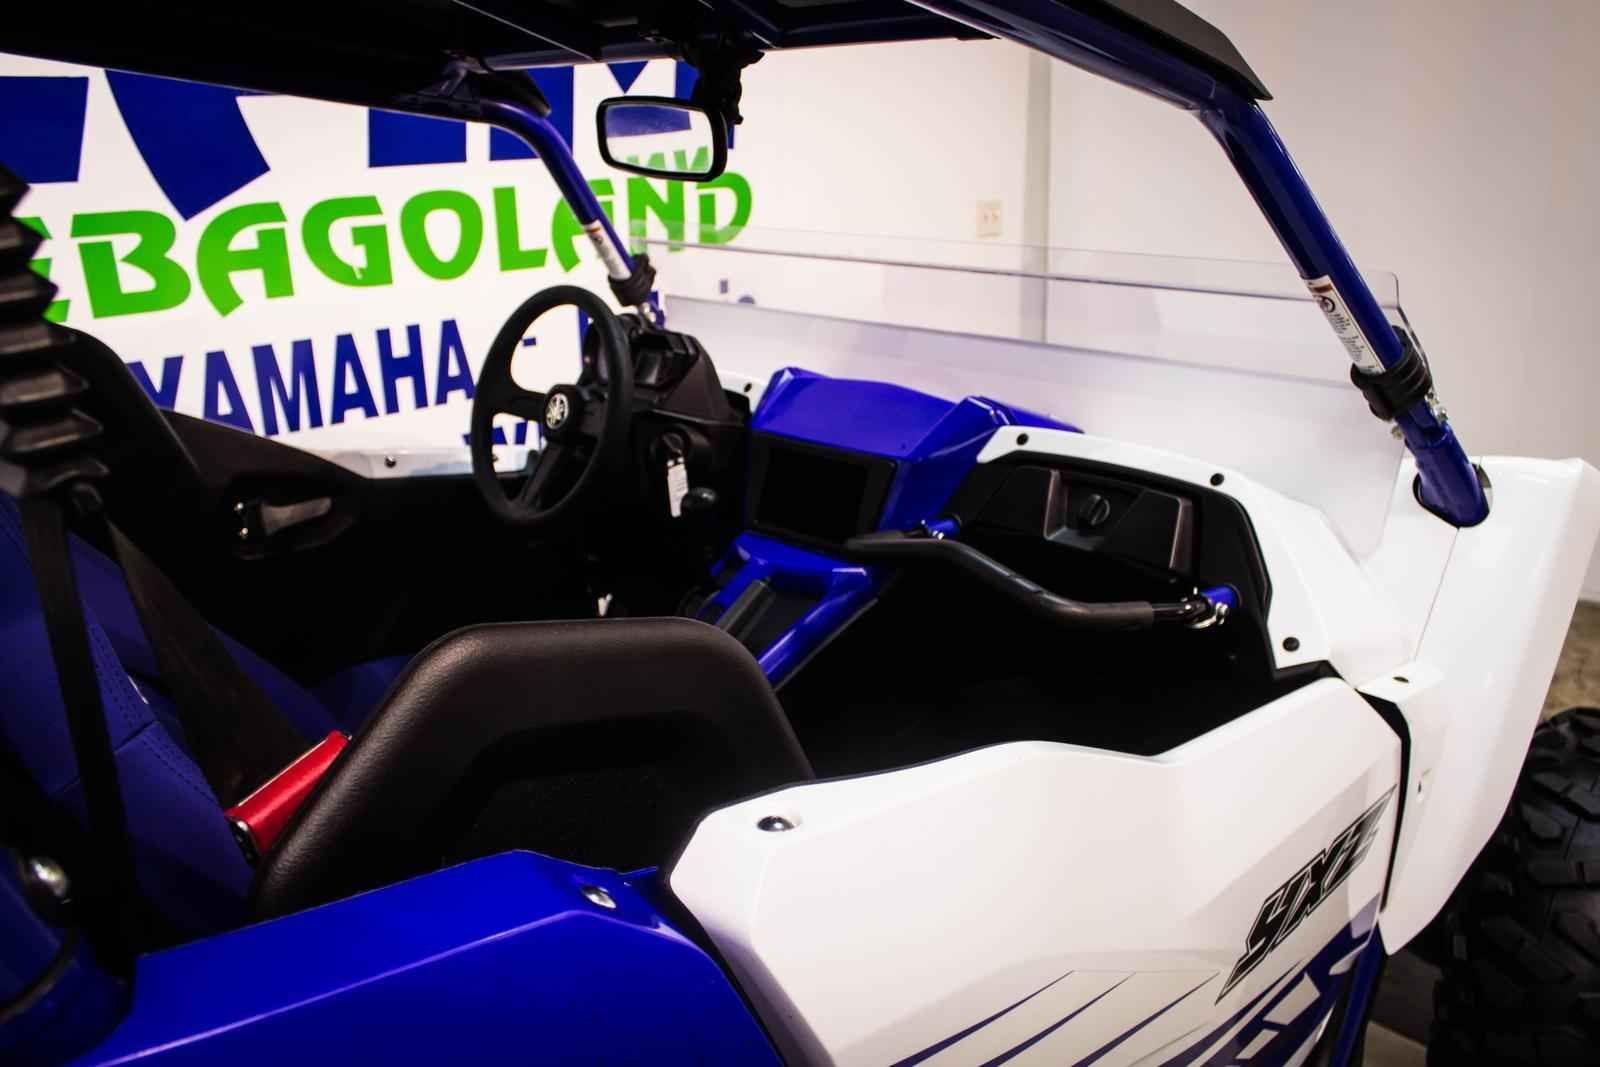 New 2016 Yamaha YXZ1000R - Racing Blue/White w/Sunt ATVs For Sale in Wisconsin. 2016 YAMAHA YXZ1000R - Racing Blue/White w/Sunt, This unit is priced with the accessories listed below and was used as a demo. The vehicle has 1555 miles on it but will still be sold as brand new and will still have the full manufacturer's warranty that will start from the date of purchase. If you have any additional questions regarding this vehicle please feel free to contact us!Installed Accessories:Raceline…